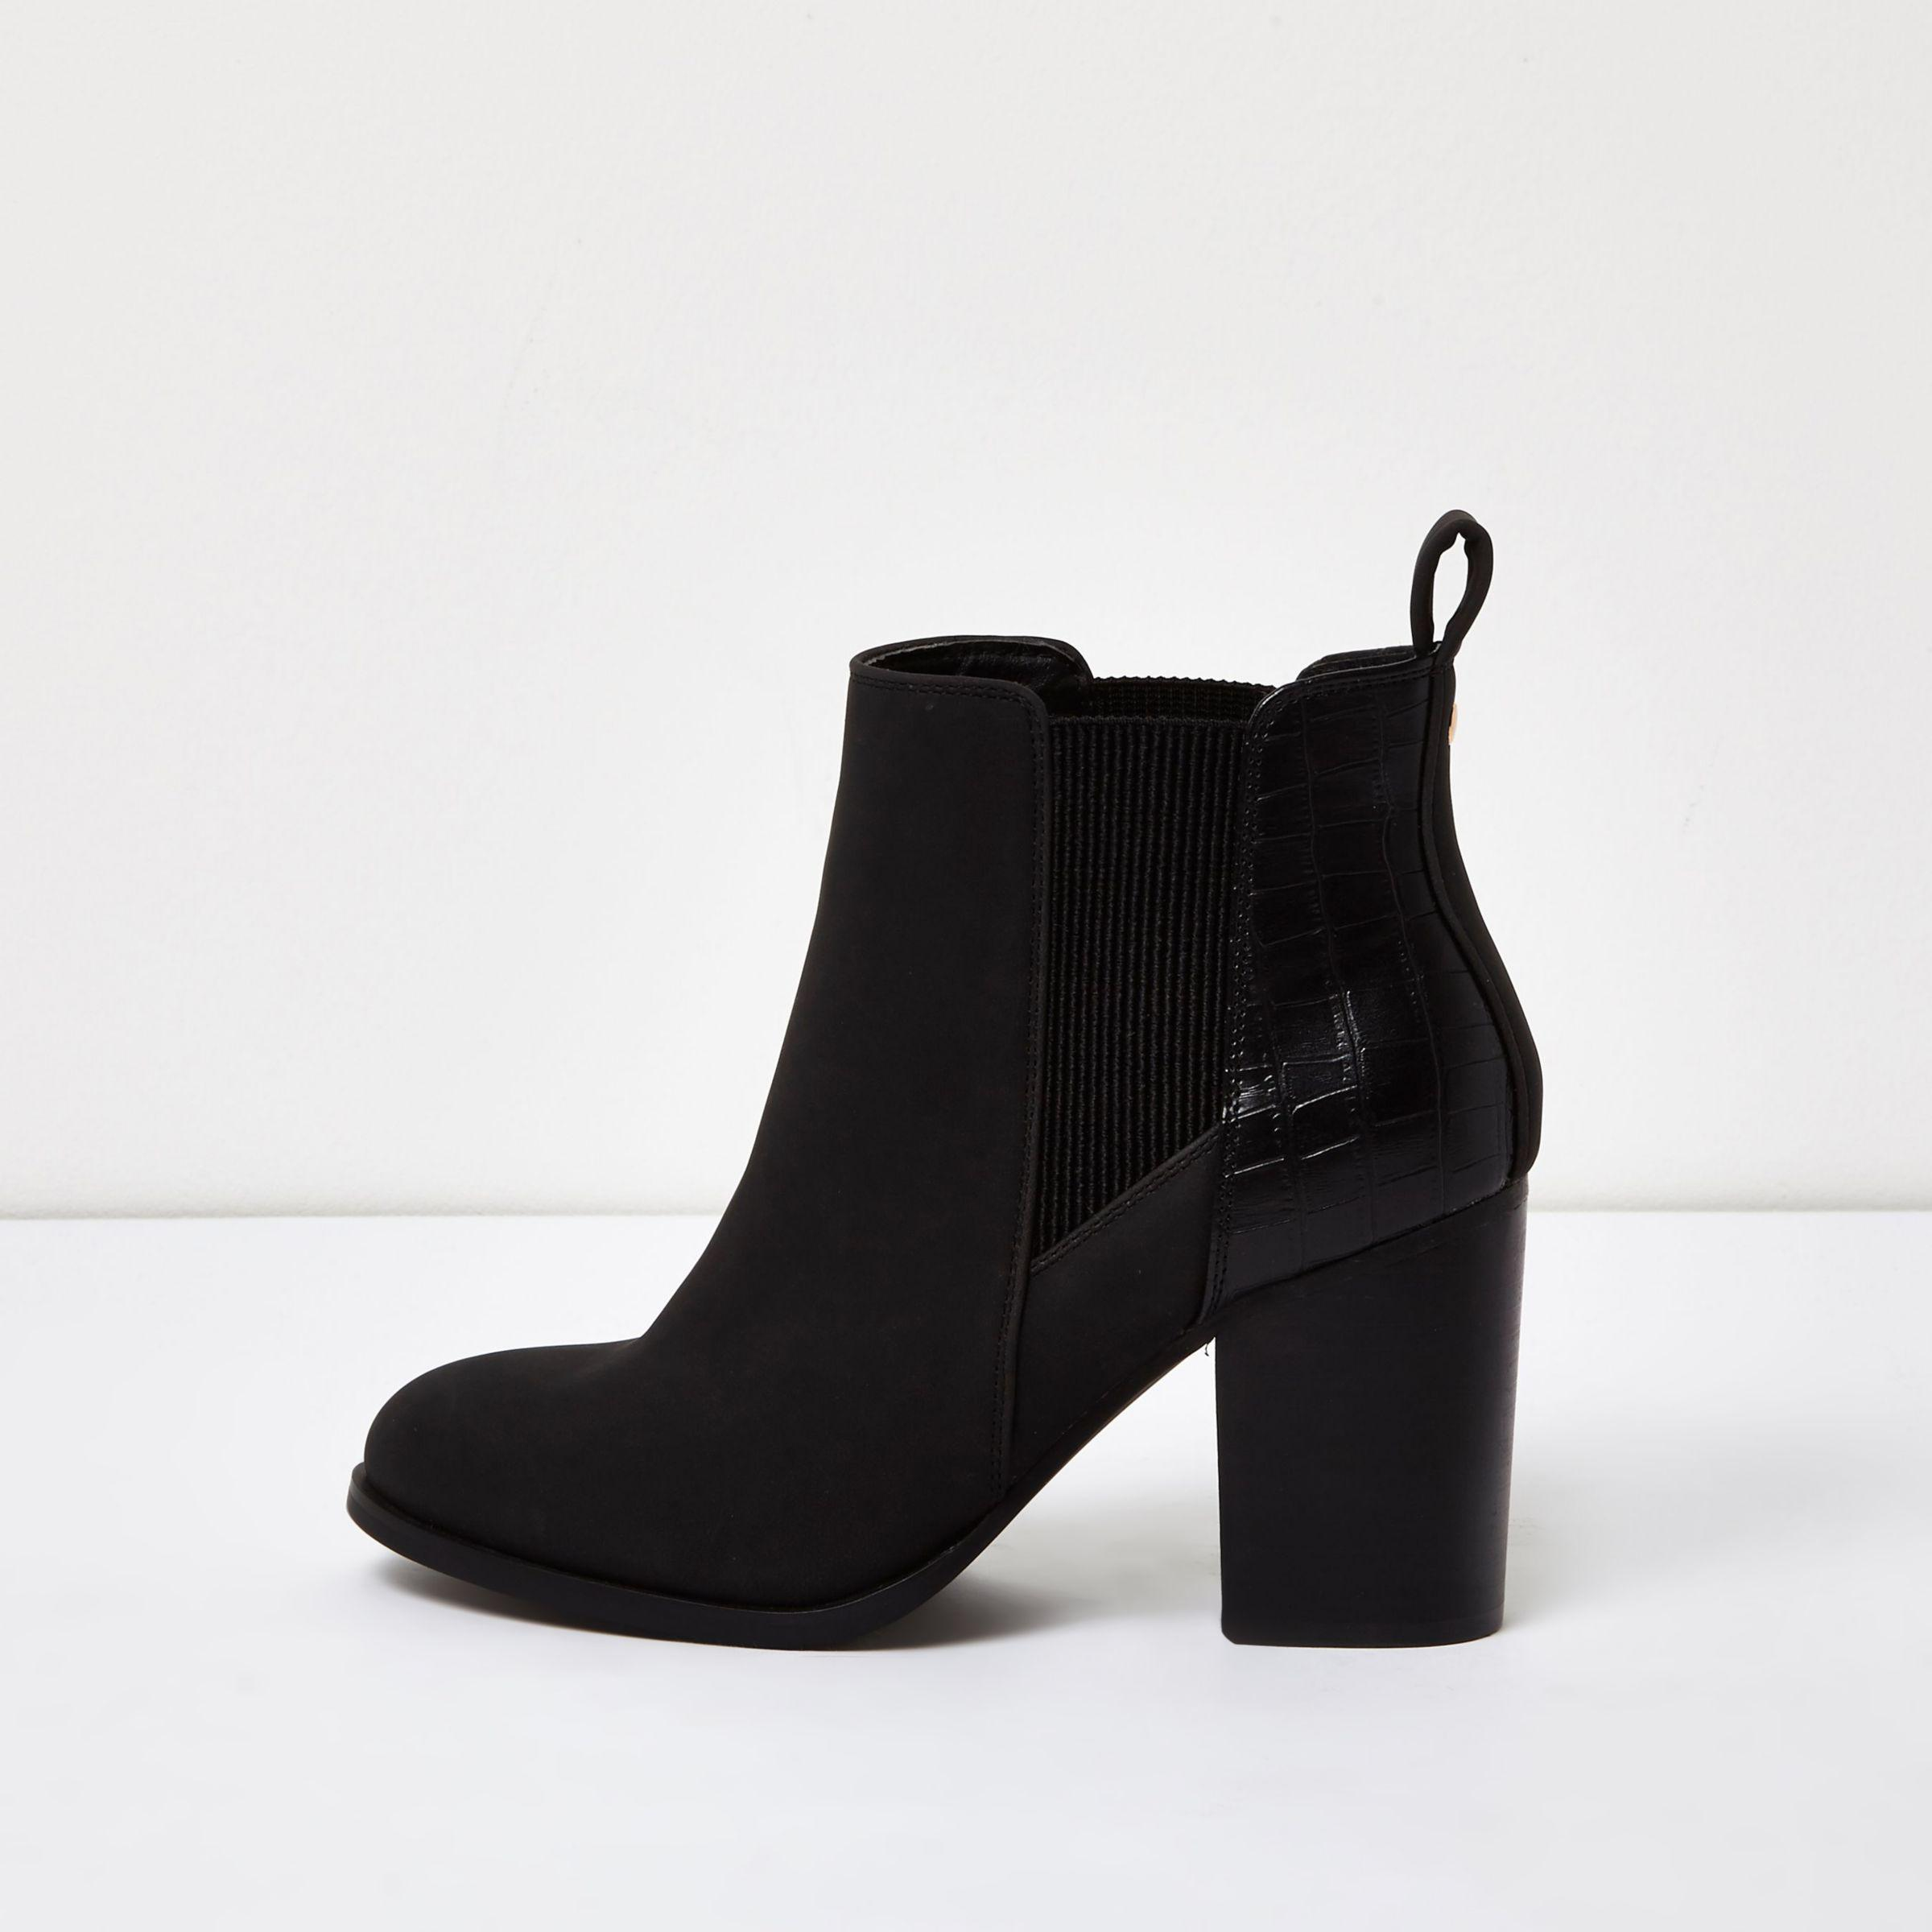 6934a4d0e99b Lyst - River Island Patent Panel Heeled Chelsea Boots in Black